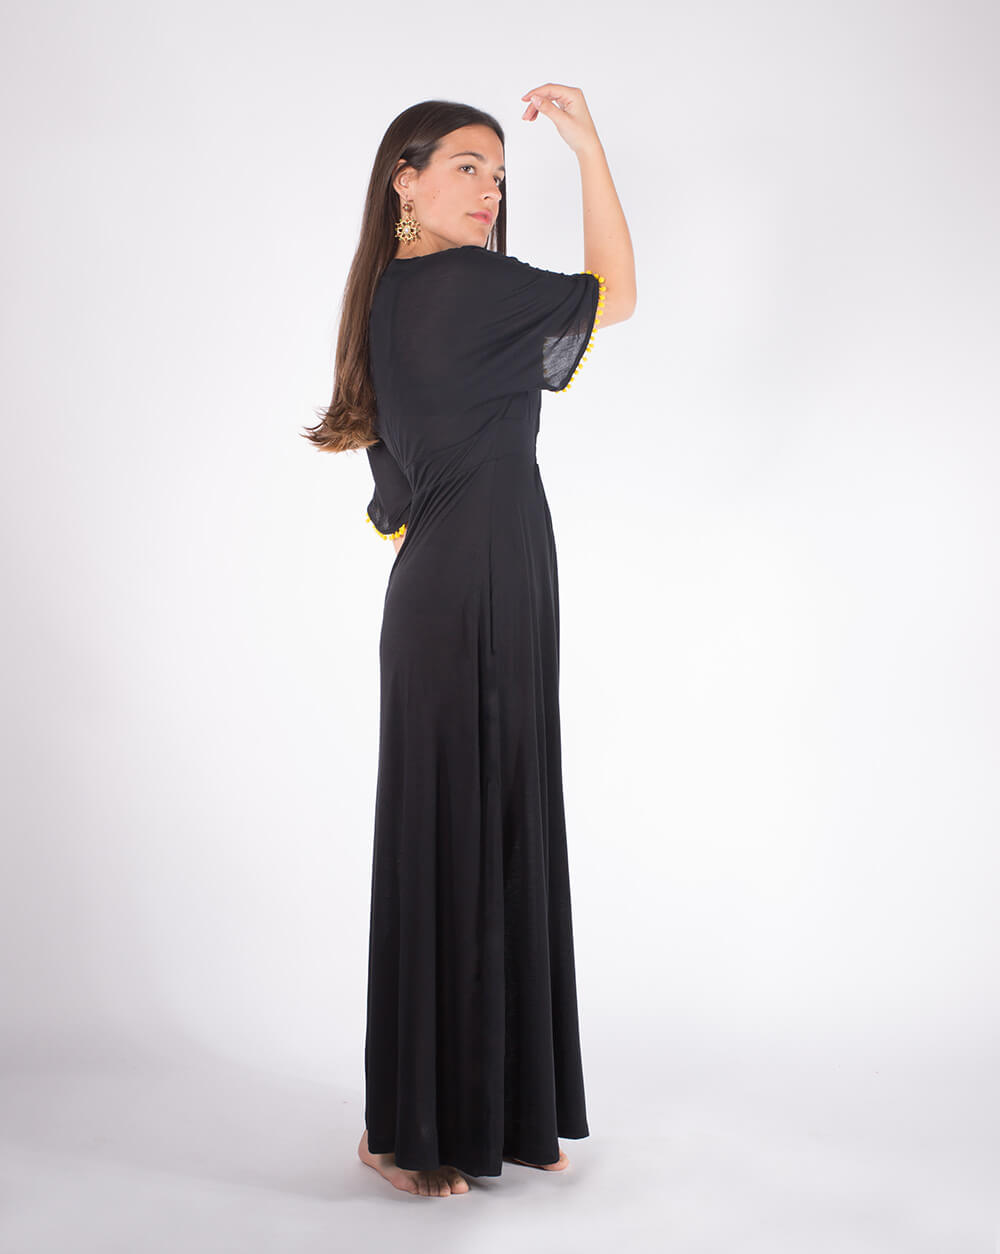 boom long dress vestido comprido vestido longo 3